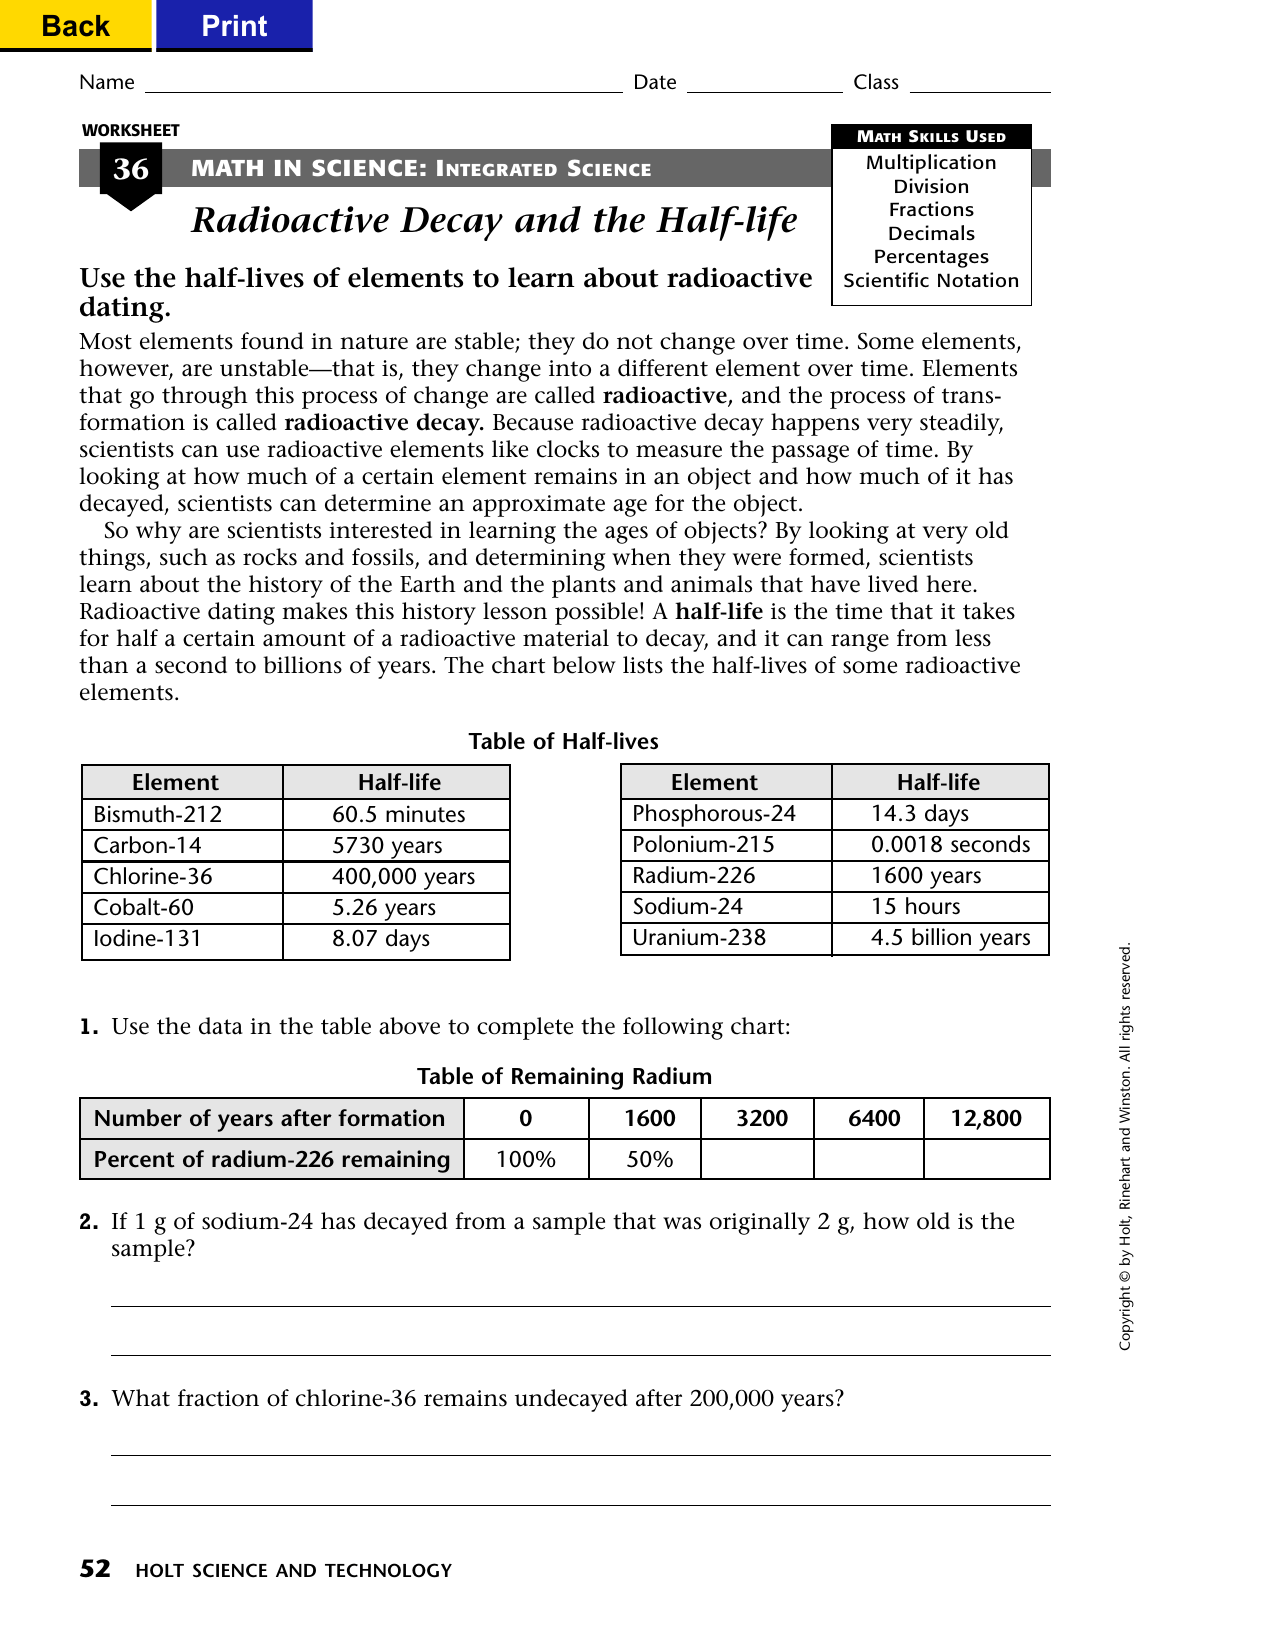 Radioactive Decay And The Half Life